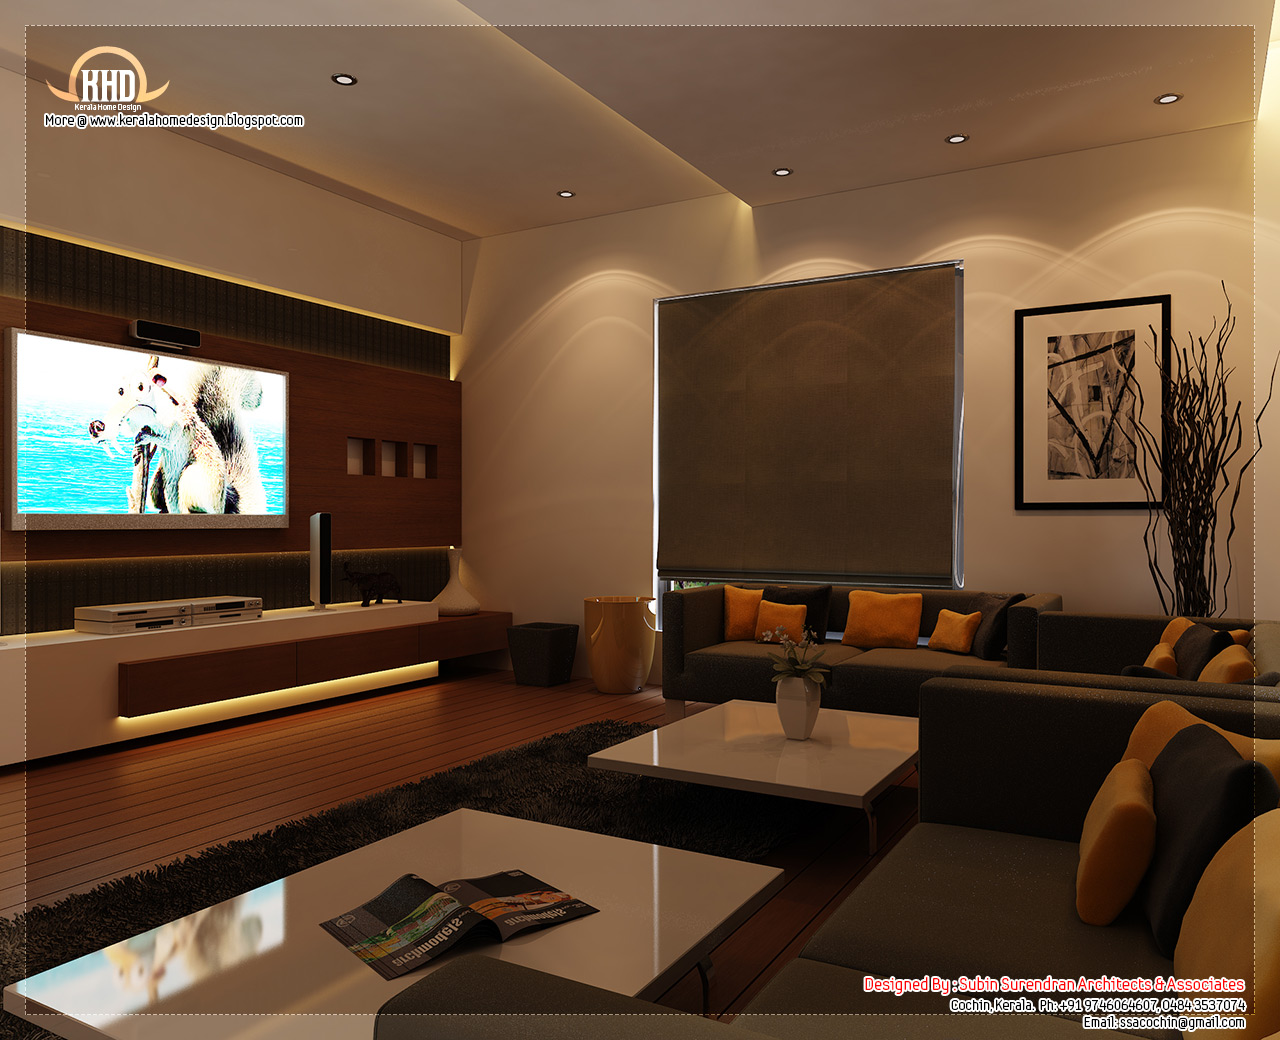 Beautiful home interior designs kerala home - Home interior design living room ...